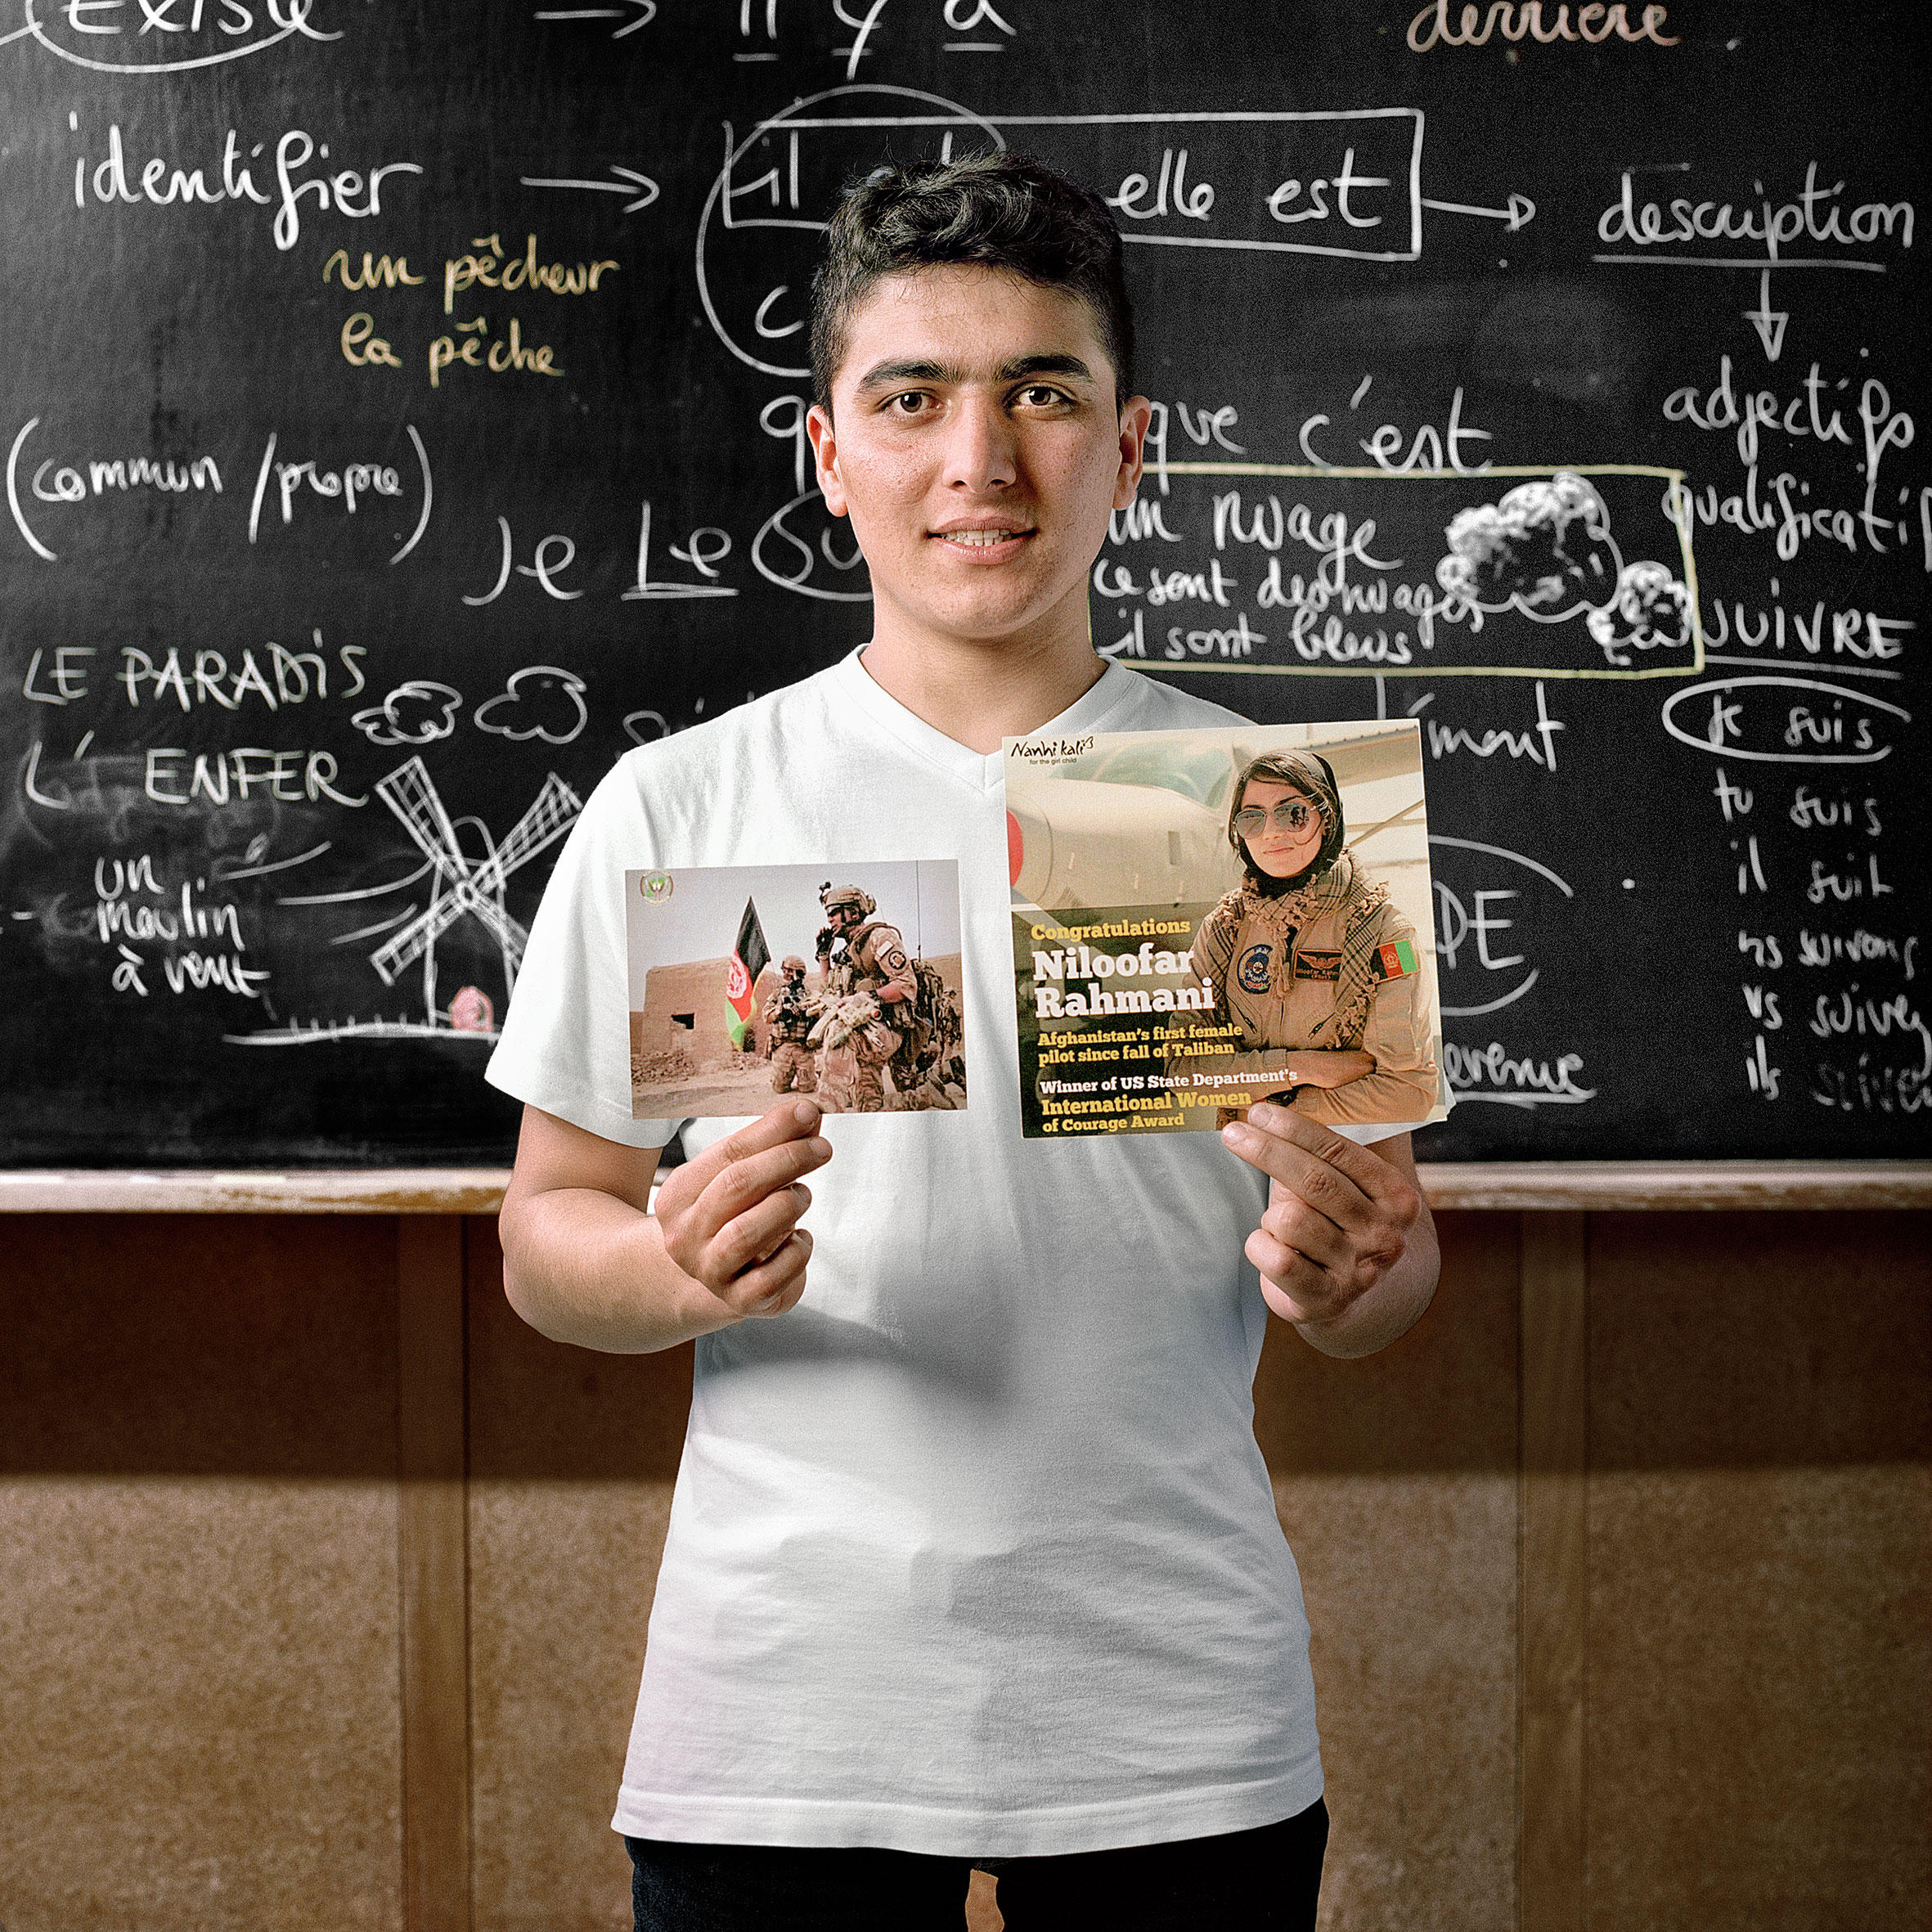 teenager stands in front of balckboard holding two photos